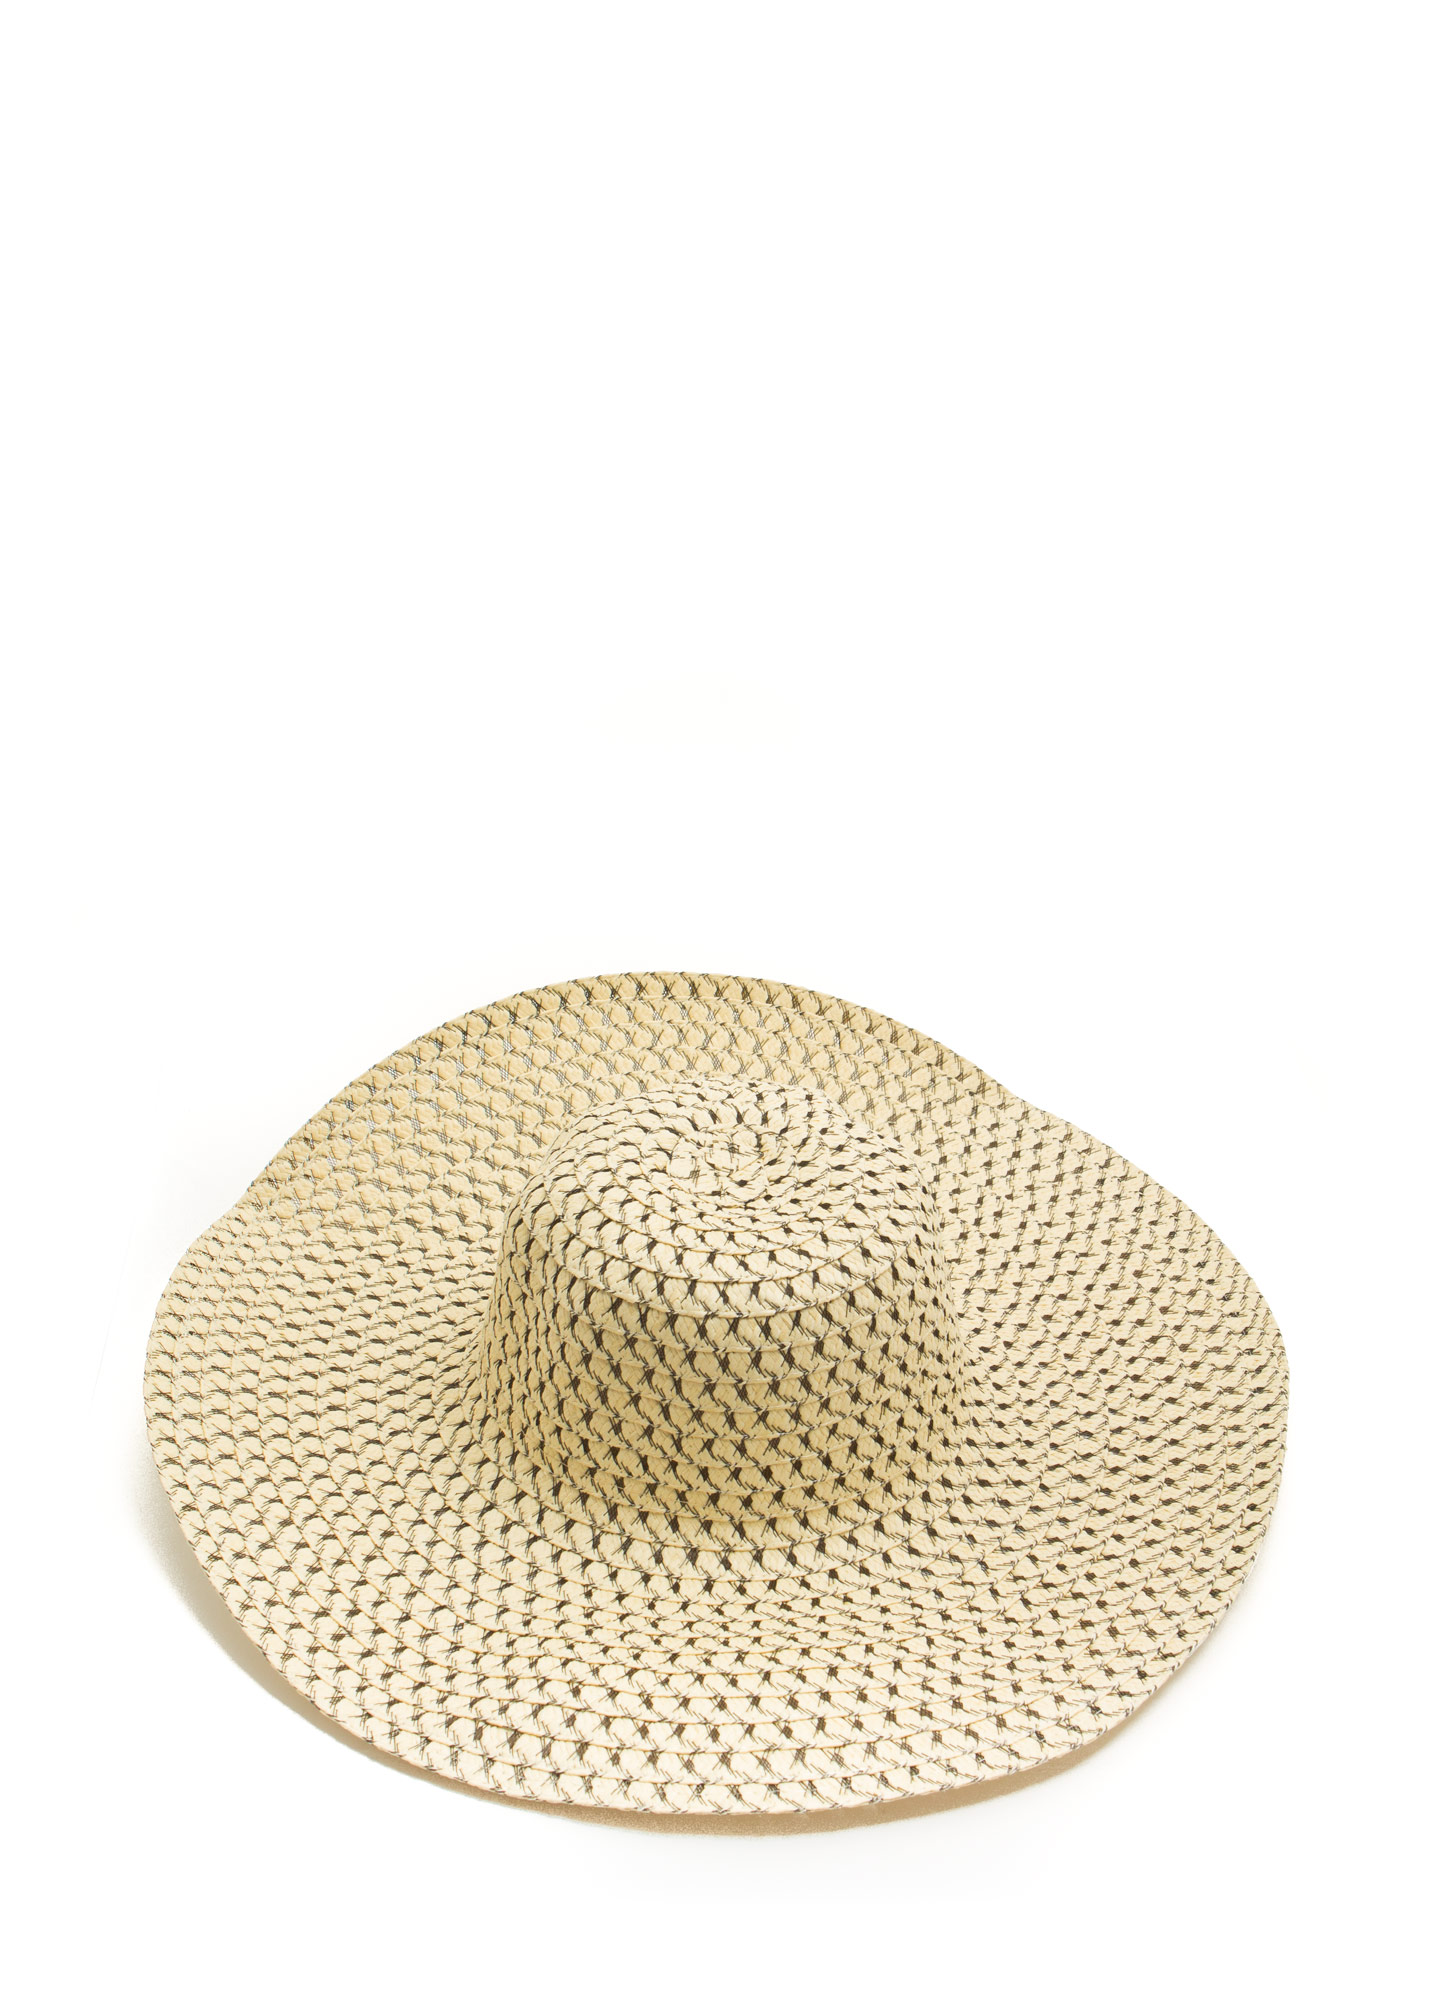 Perforated Floppy Brim Sunhat BEIGEBLACK